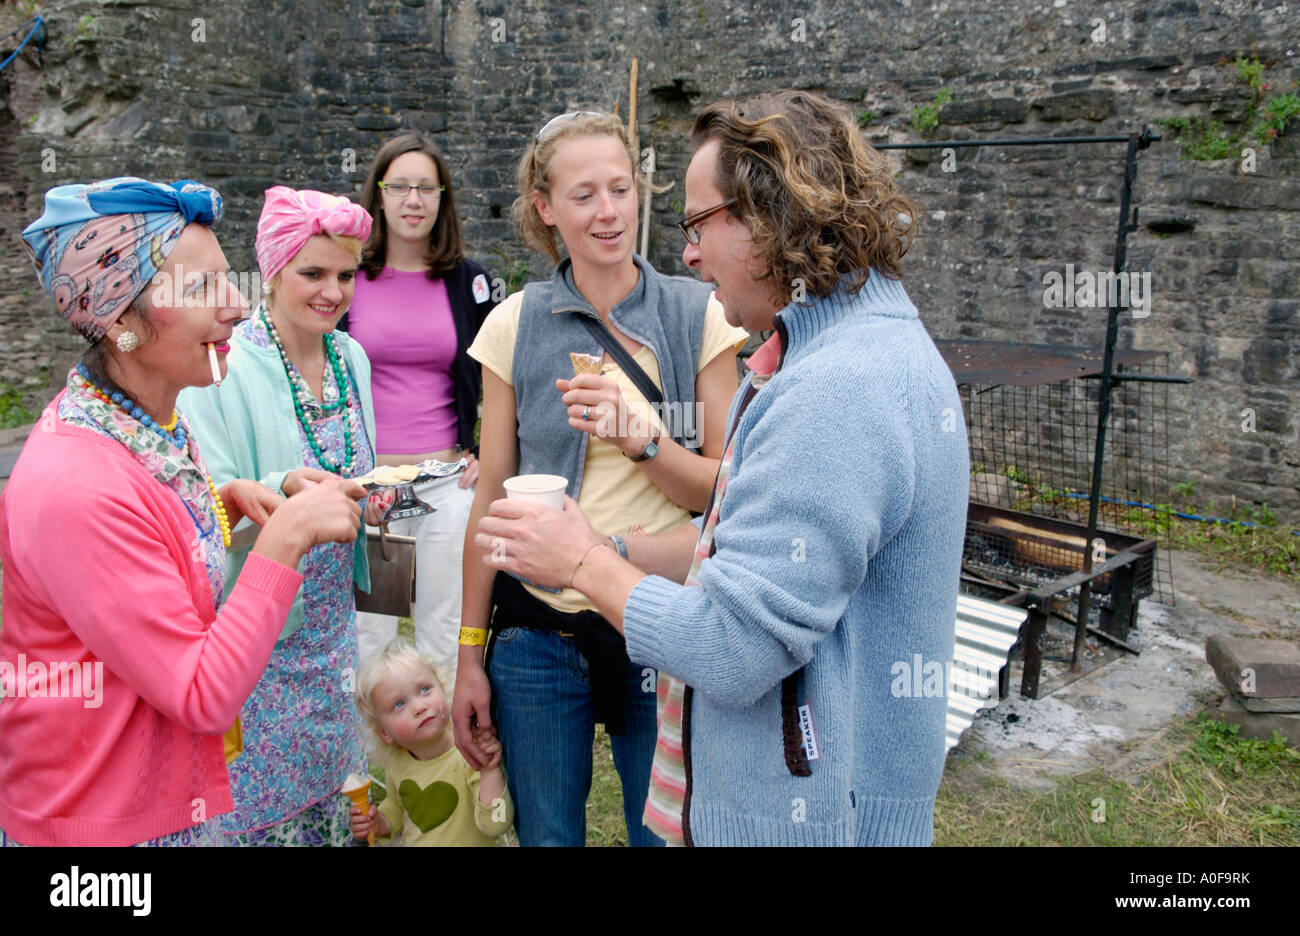 Hugh Fearnley Whittingstall at the annual Abergavenny Food Festival Wales UK GB with performance group the TEA LADIES - Stock Image